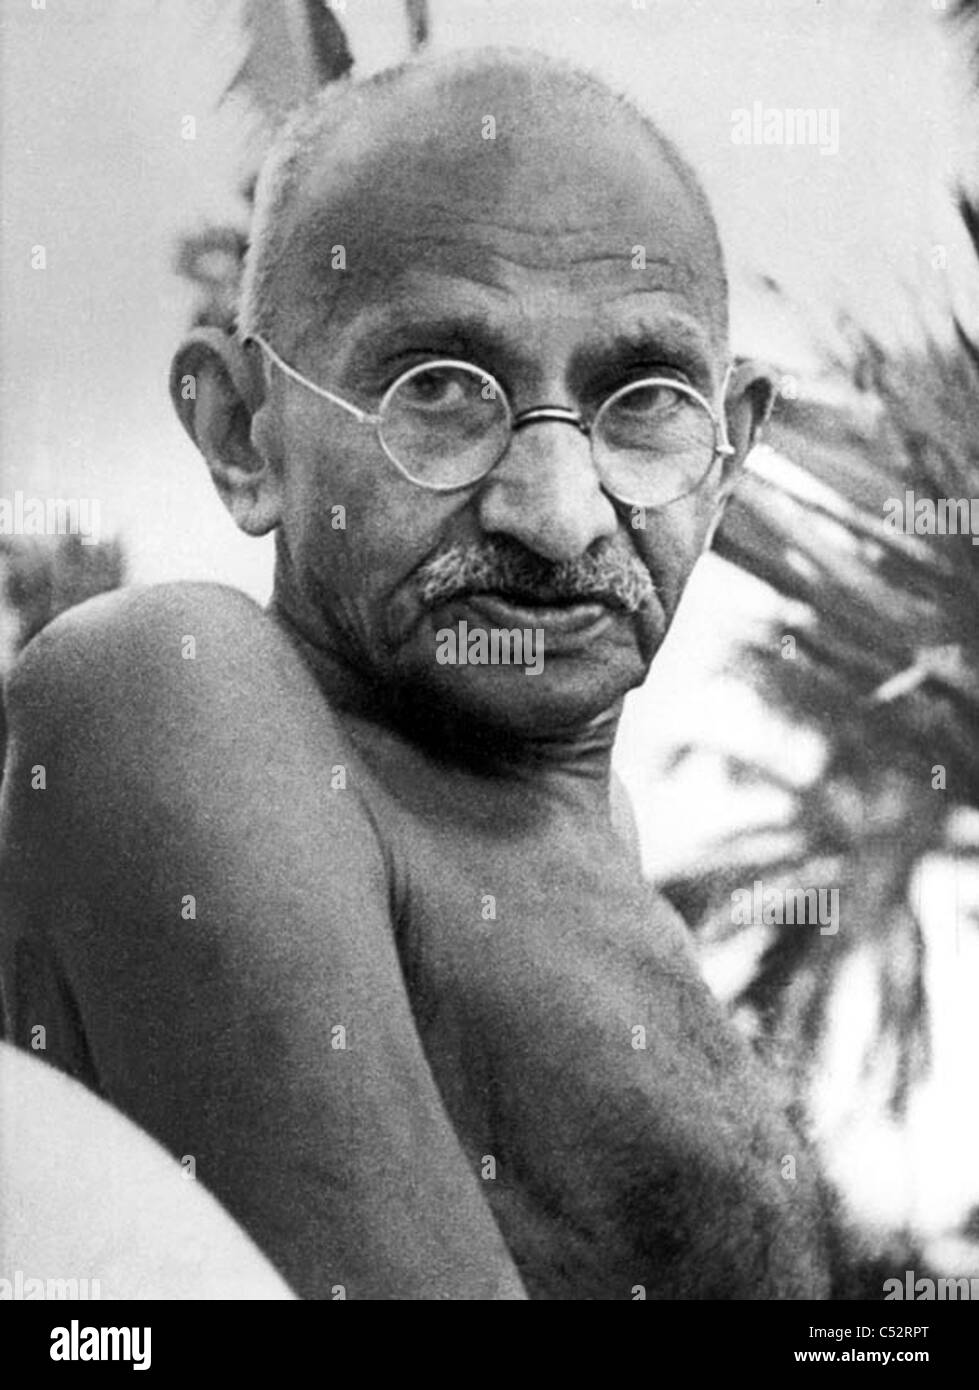 MOHENDRAS GANDHI (1869-1948) Indian political and ideological leader in May 1944 - Stock Image